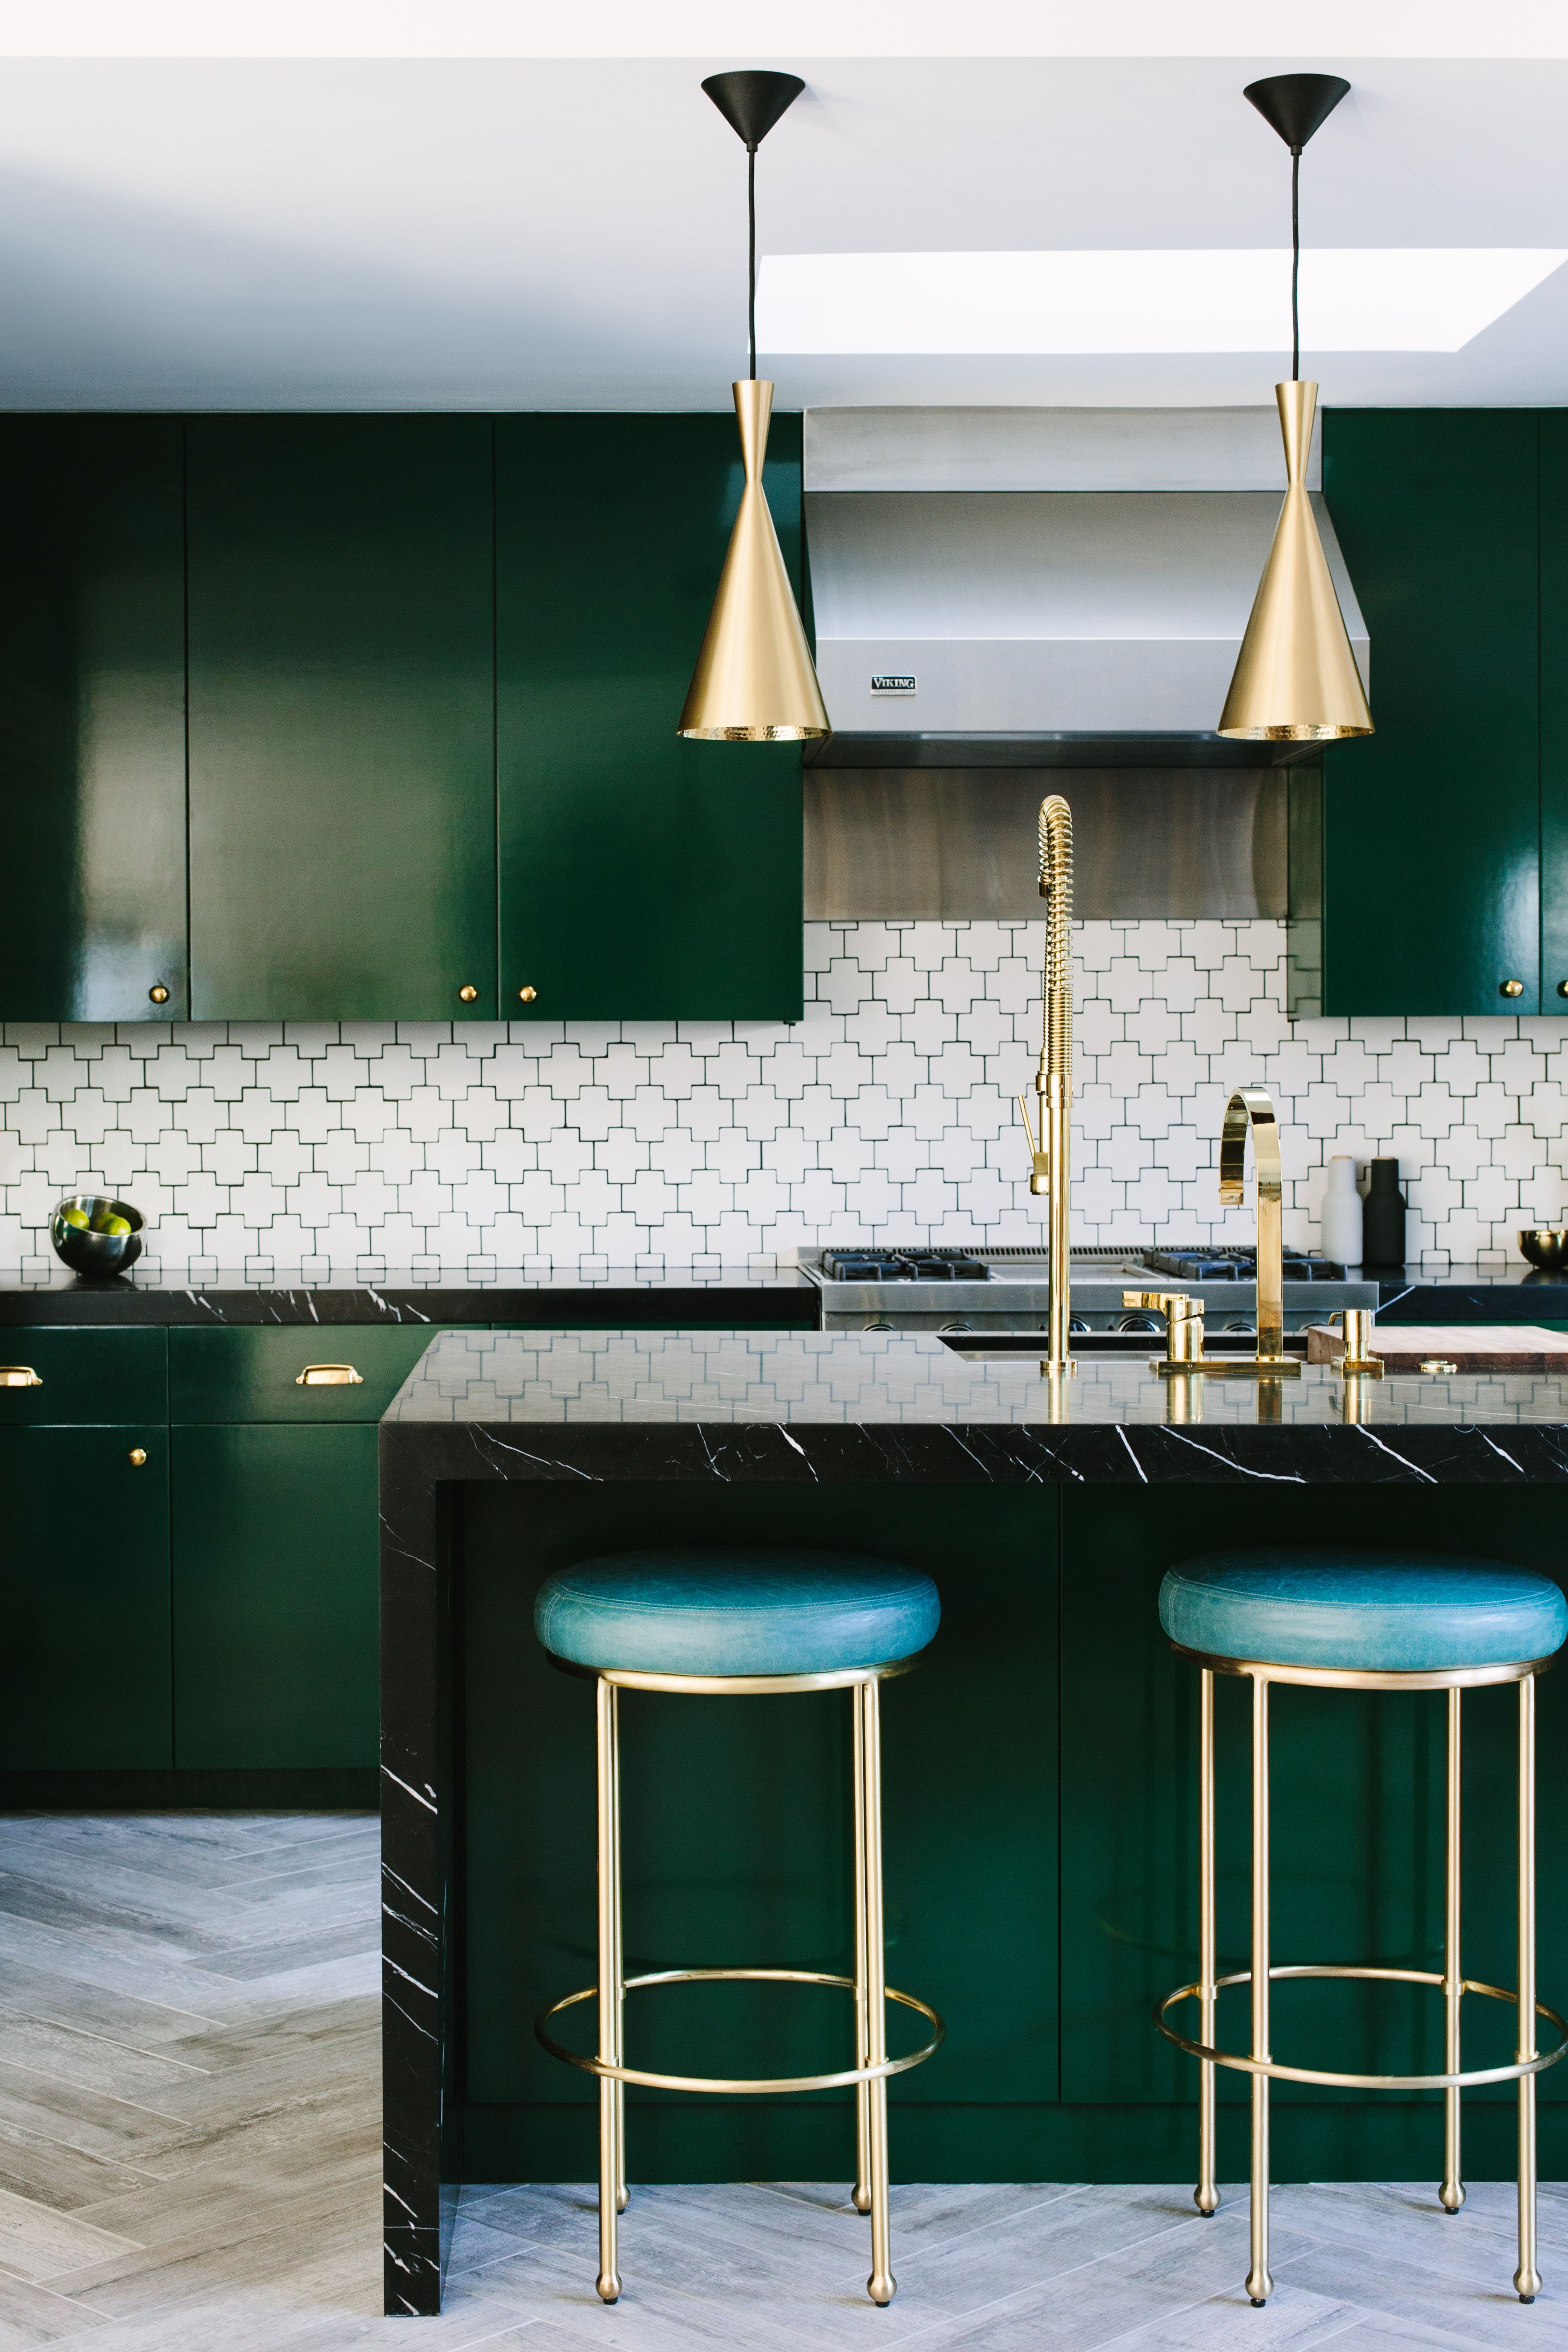 """<p>Tile offers a repeating pattern to your backsplash, floor, or counter no matter its shape — and that can make you think the quietest options (like rectangles and squares) are the safest. But in a solid or neutral hue, more playful patterns dial up your kitchen's decor without overwhelming the space.</p><p><br></p><p>""""I stumbled across this backsplash (Swiss Cross by Ann Sacks) while searching for something that <em>looked</em> like subway tile, but wasn't,"""" says Caitlin Murray of <a href=""""http://www.blacklacquerdesign.com/"""" target=""""_blank"""">Black Lacquer Design</a>. """"I was reluctant to introduce a new color pattern into this kitchen because the cabinets and counters are so strong, but I wanted a backsplash that held its own. The geometric lines complement the modern style of the kitchen — it's a traditional element with a contemporary twist.""""<br></p>"""